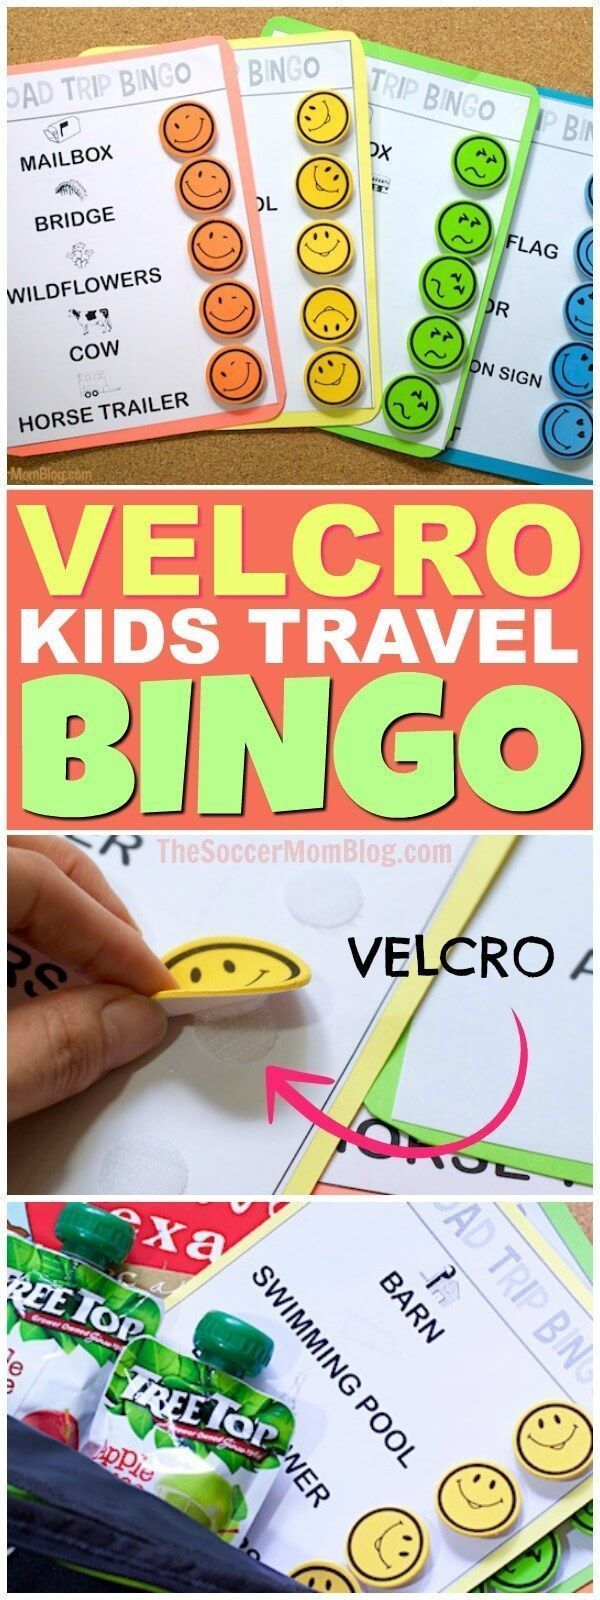 Keep your kids entertained for hours on car rides with this free printable Road Trip Bingo travel game! Plus more of our favorite road trip essentials! #ad #NoMessInTexas